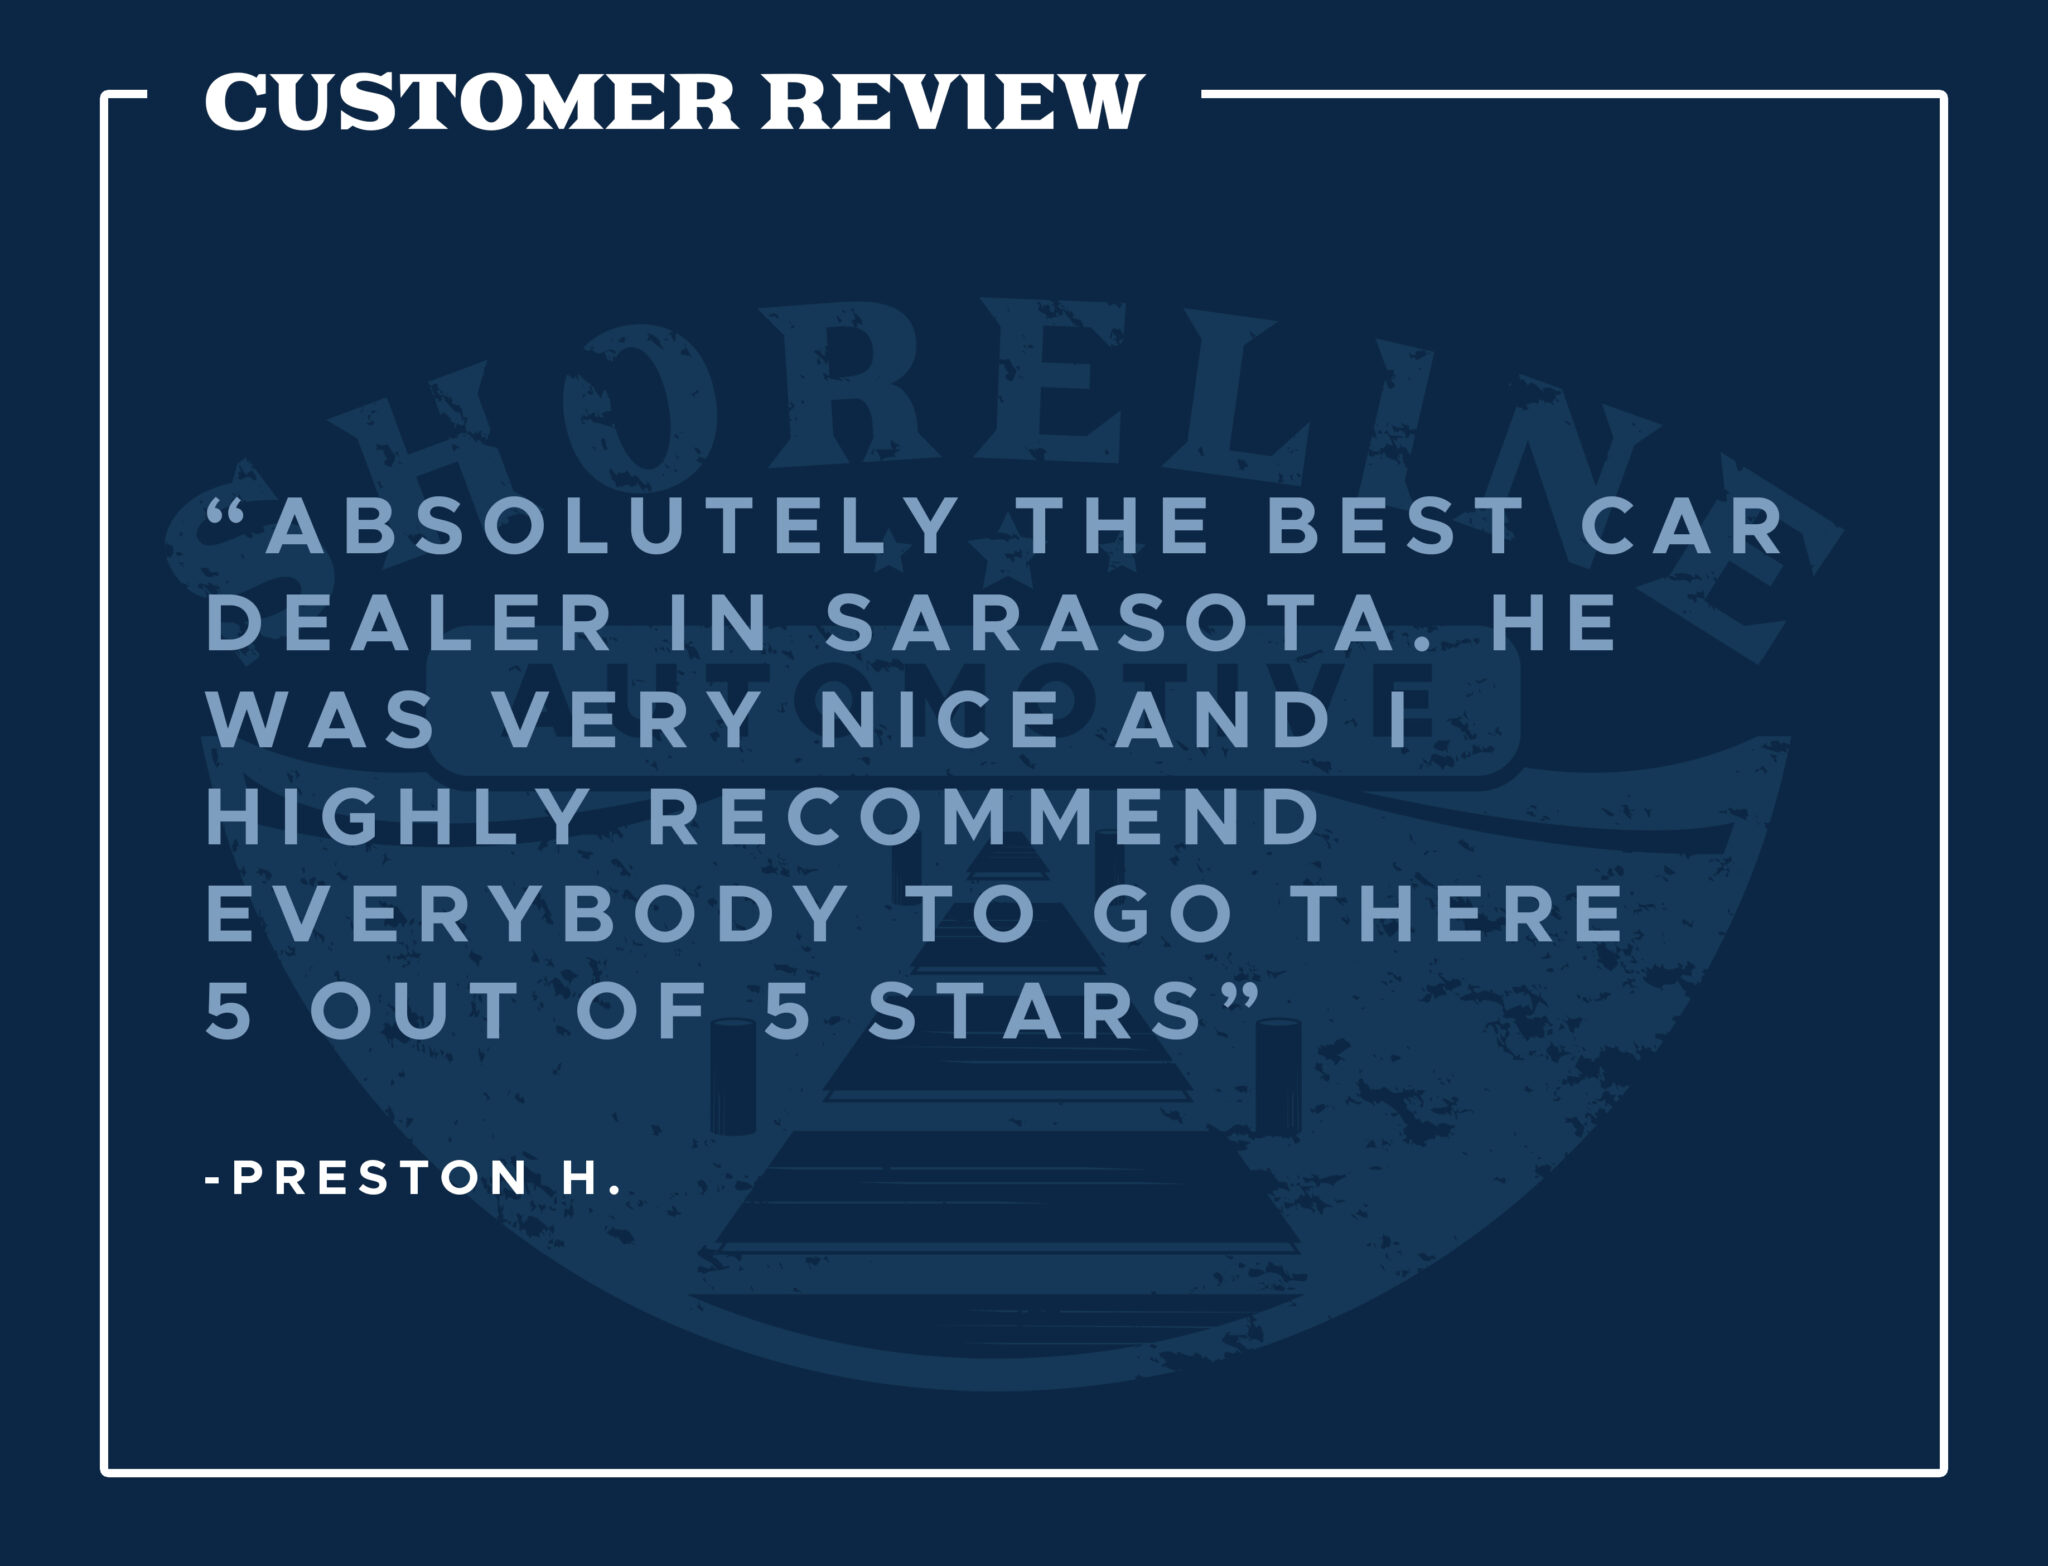 """Review of Shoreline Automotive: """"Absolutely the best car dealer in Sarasota. He was very nice and I highly recommend everybody to go there 5 out of 5 stars"""" -Preston H."""